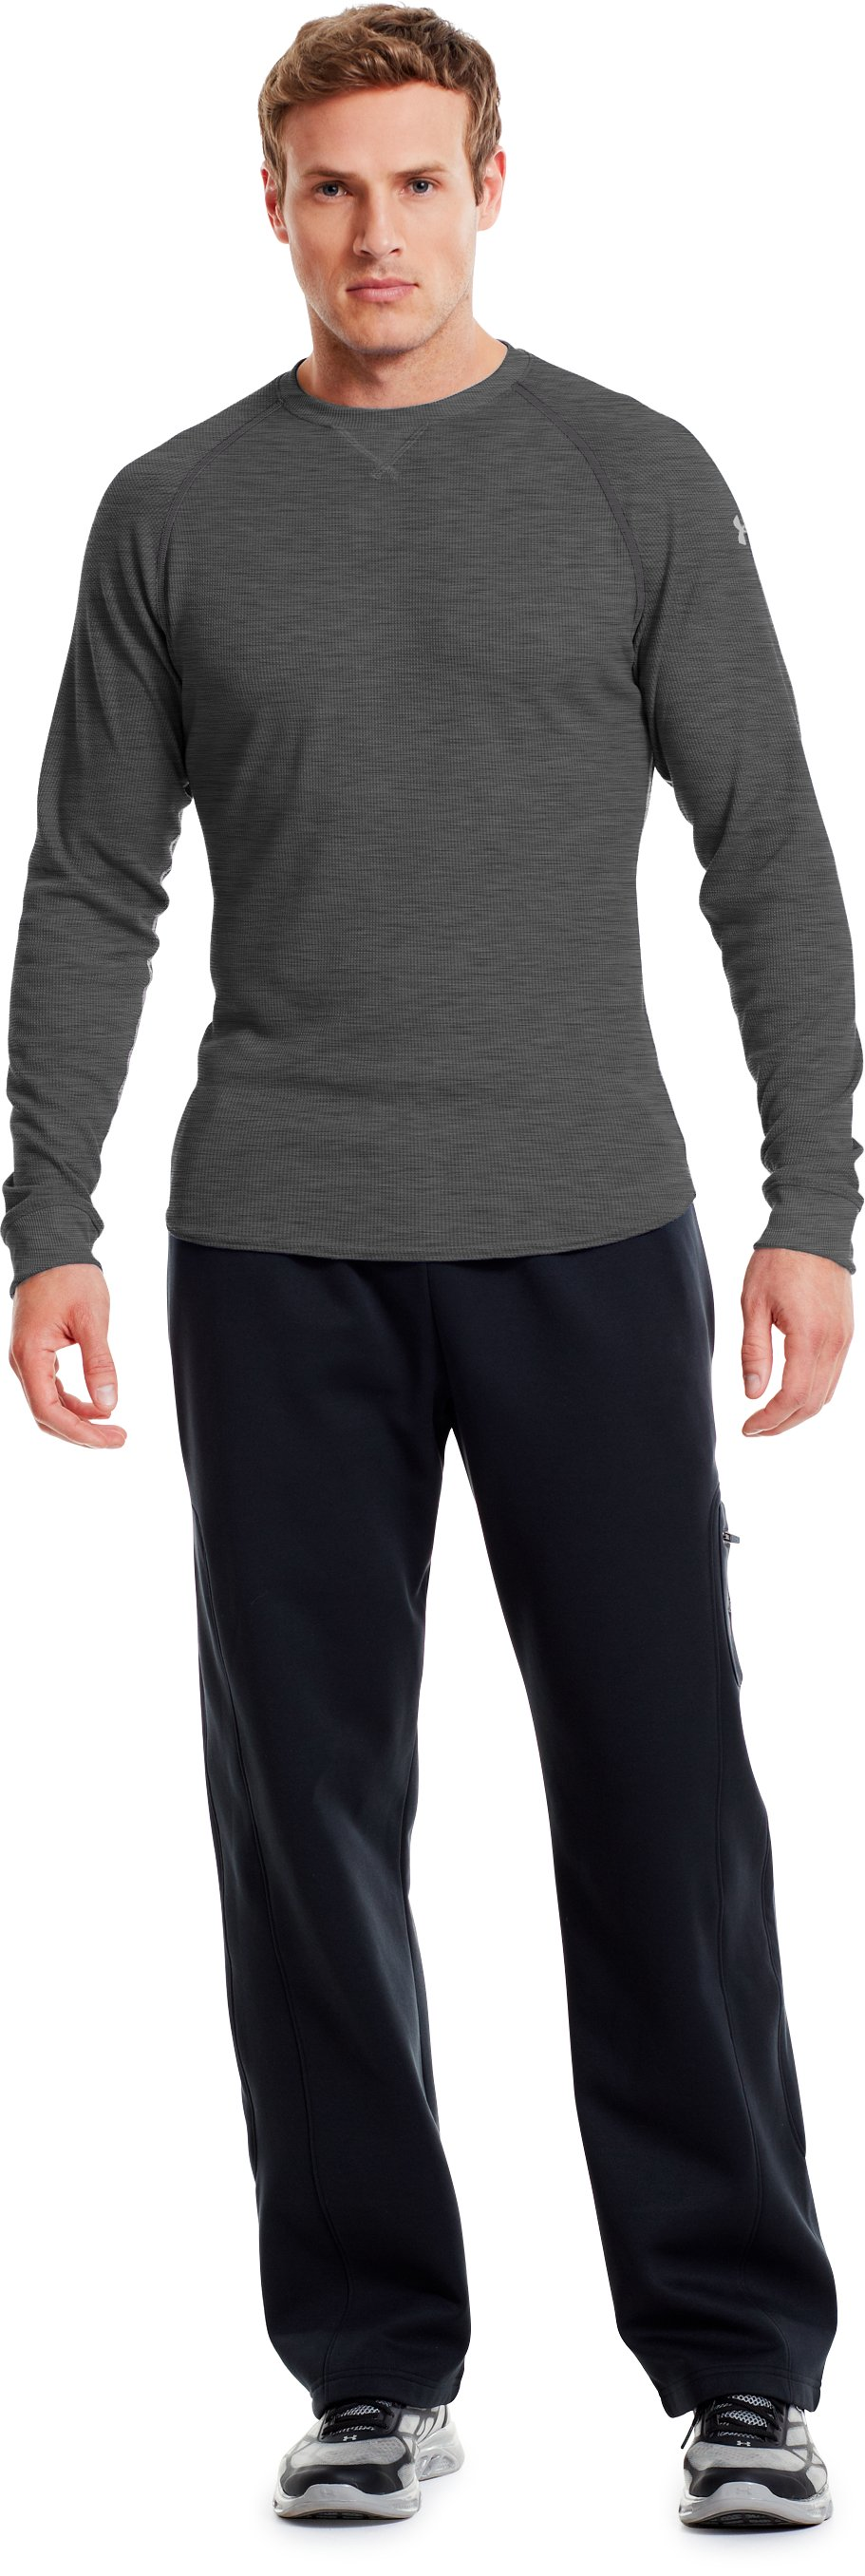 Men's UA Thermal 2.0 Crew Shirt, Carbon Heather